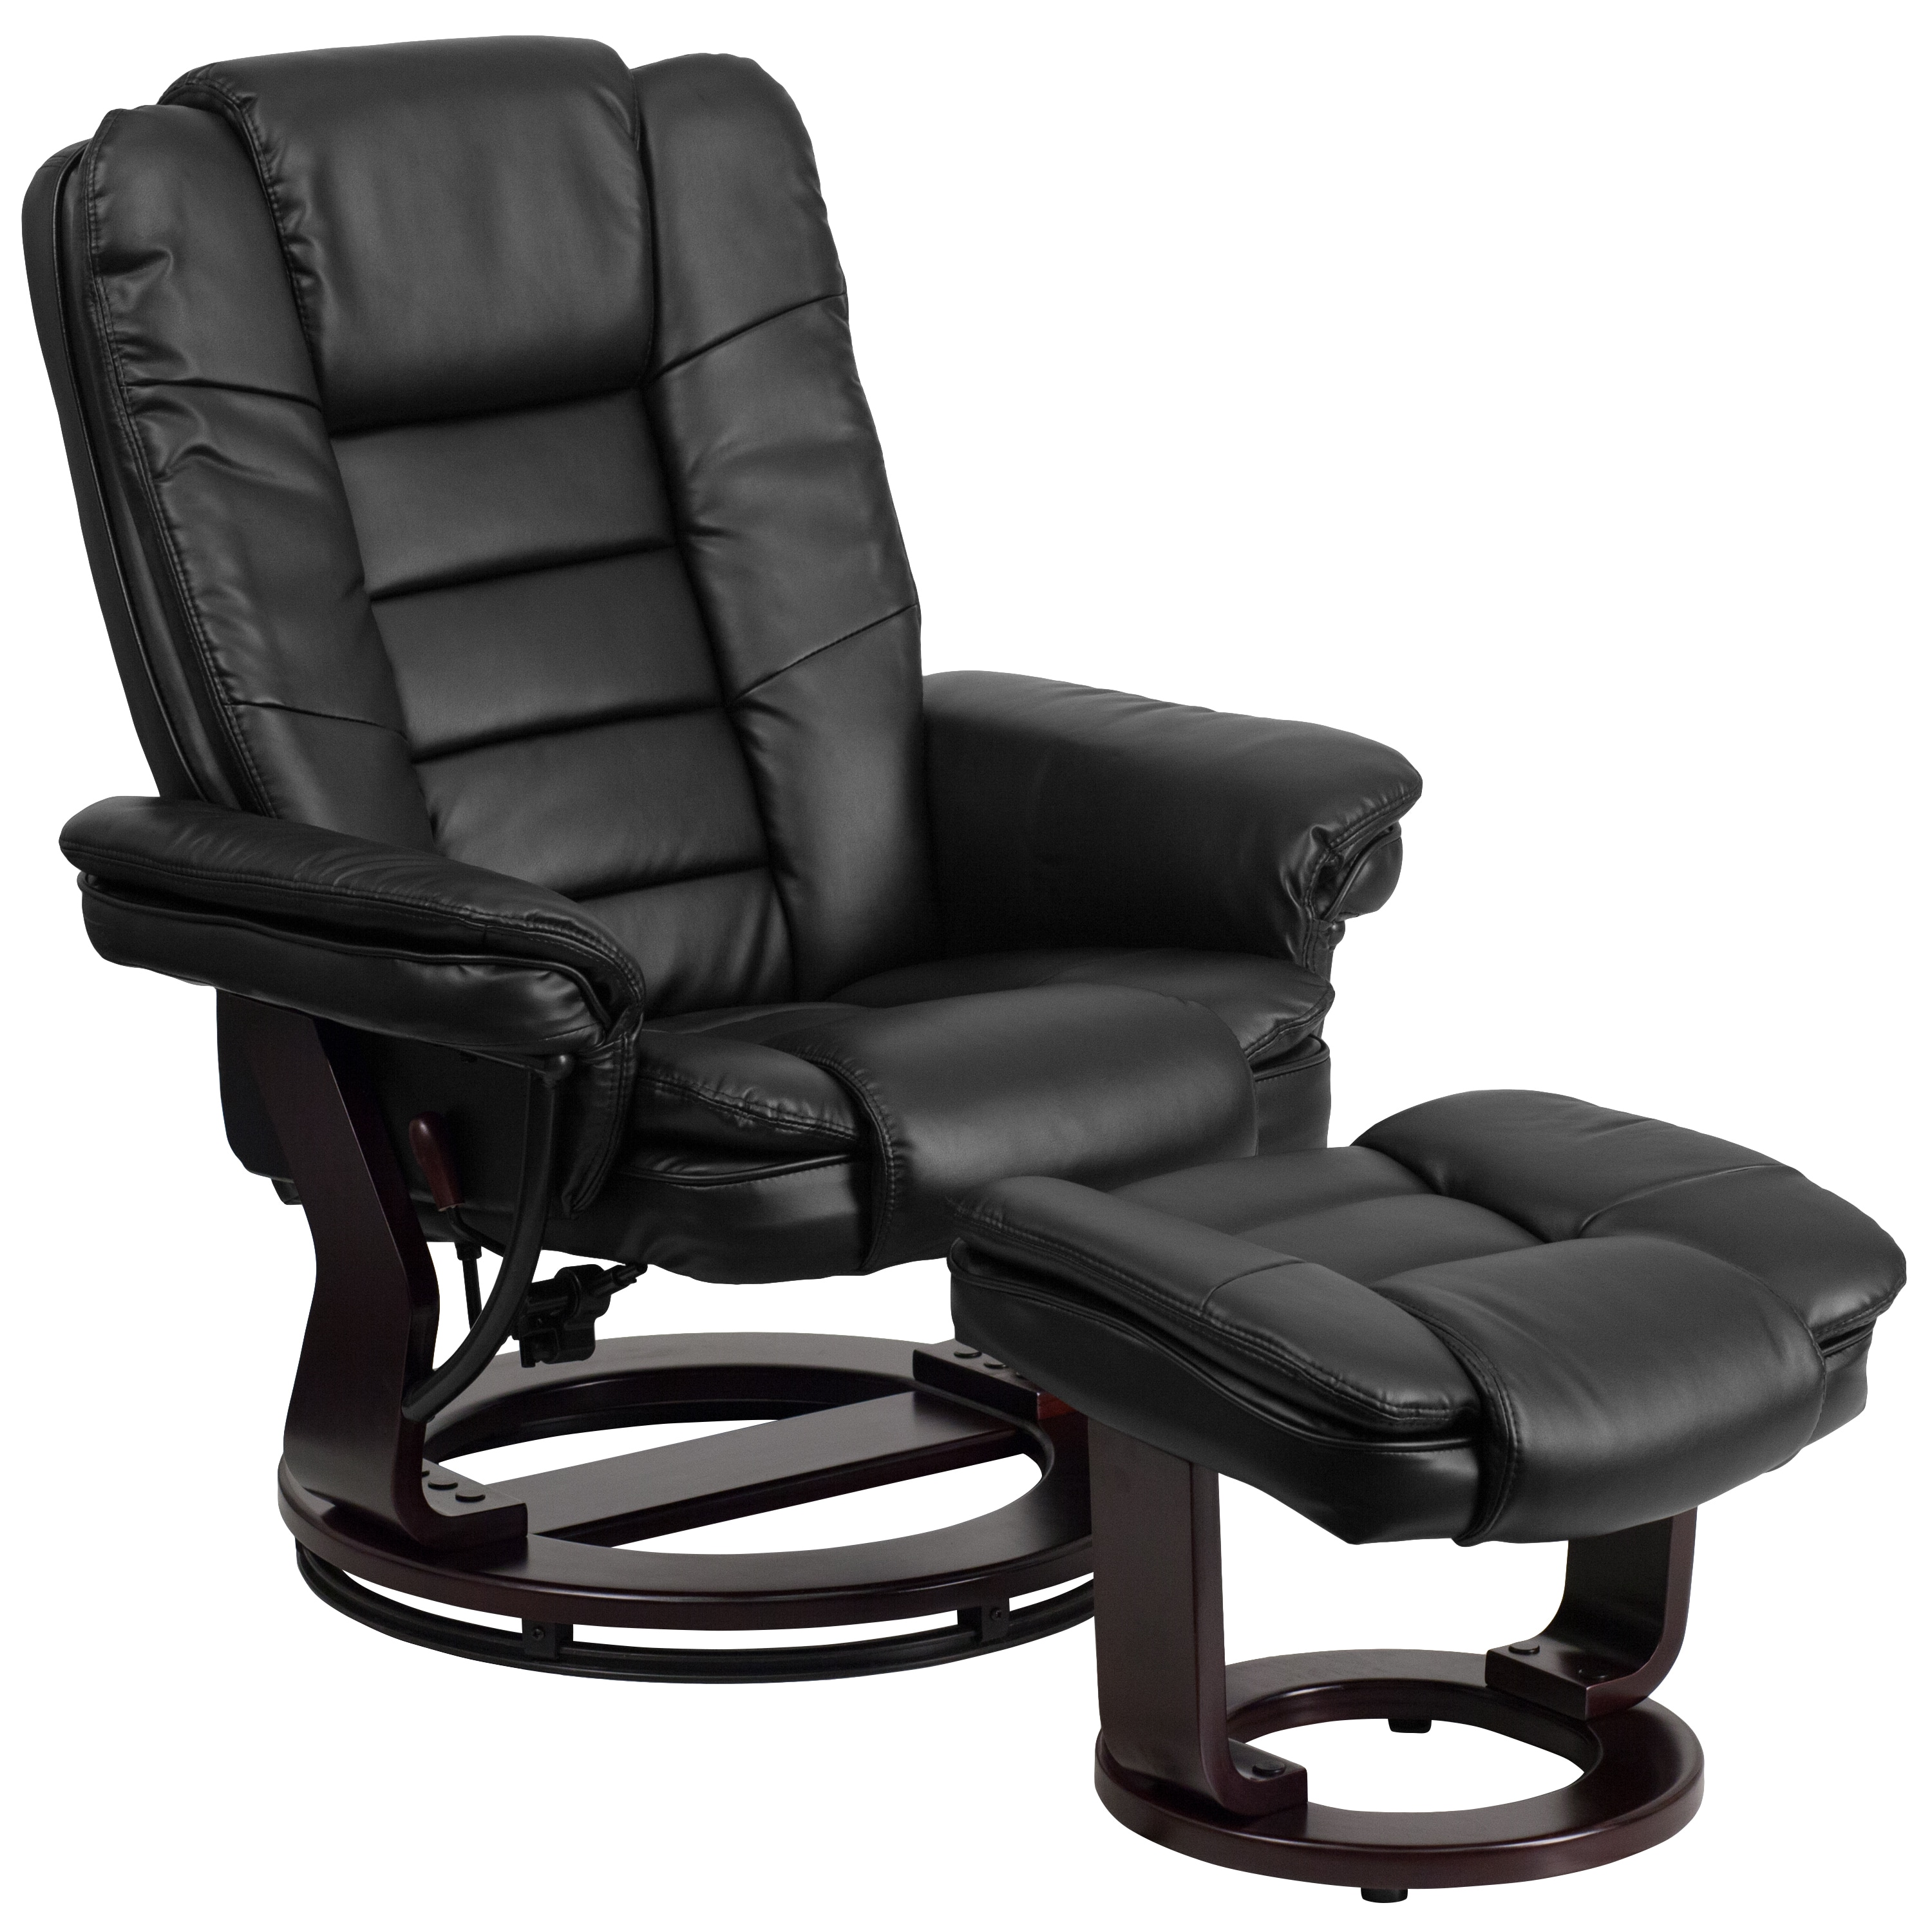 Clay Alder Home Mackinac Contemporary Leather Recliner And Ottoman With  Swiveling Mahogany Wood Base (Option